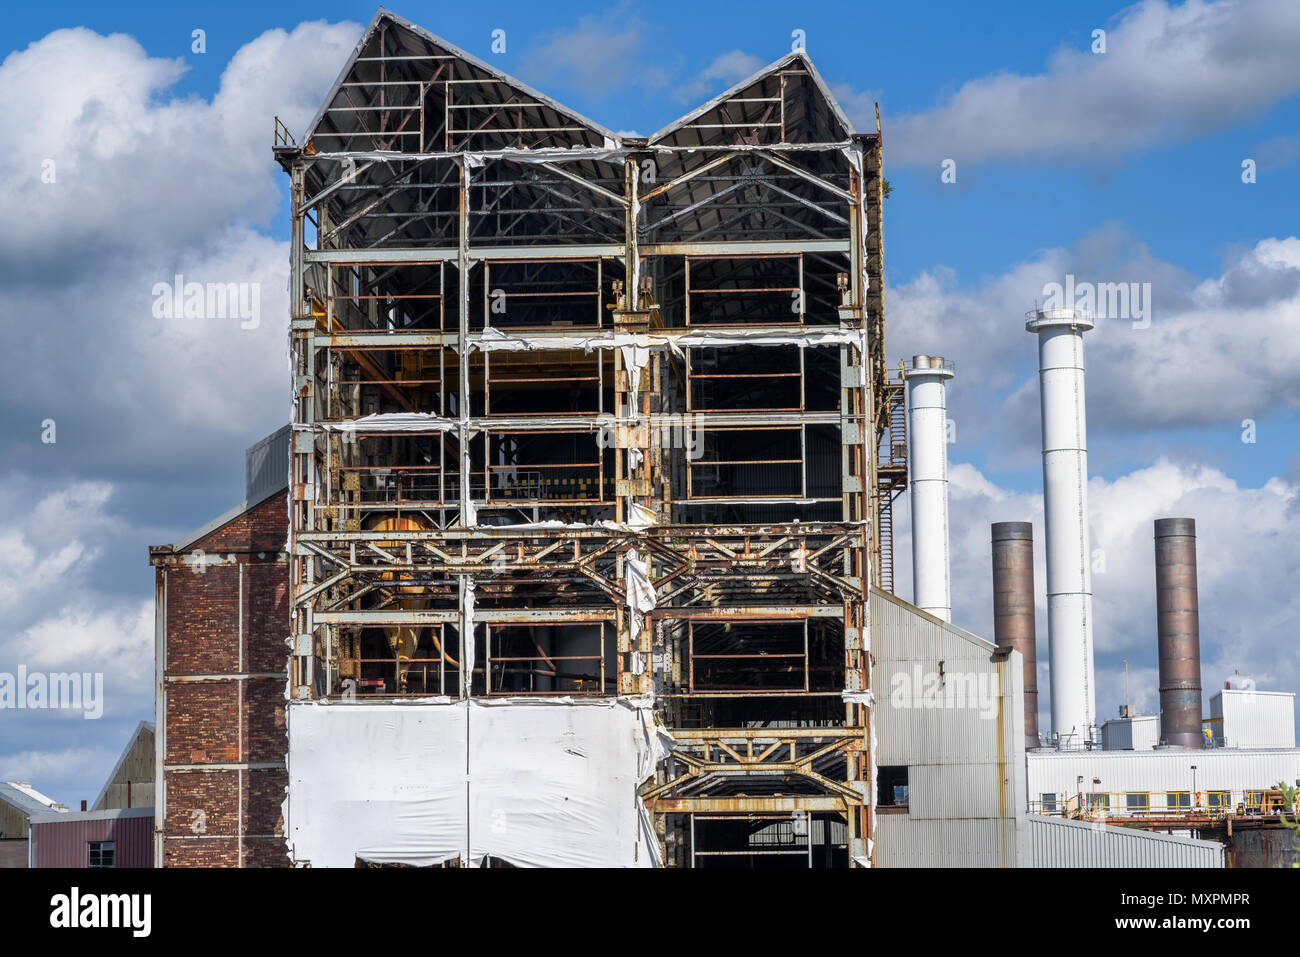 A large industrial structure at Brunner works, Winnington, Northwich